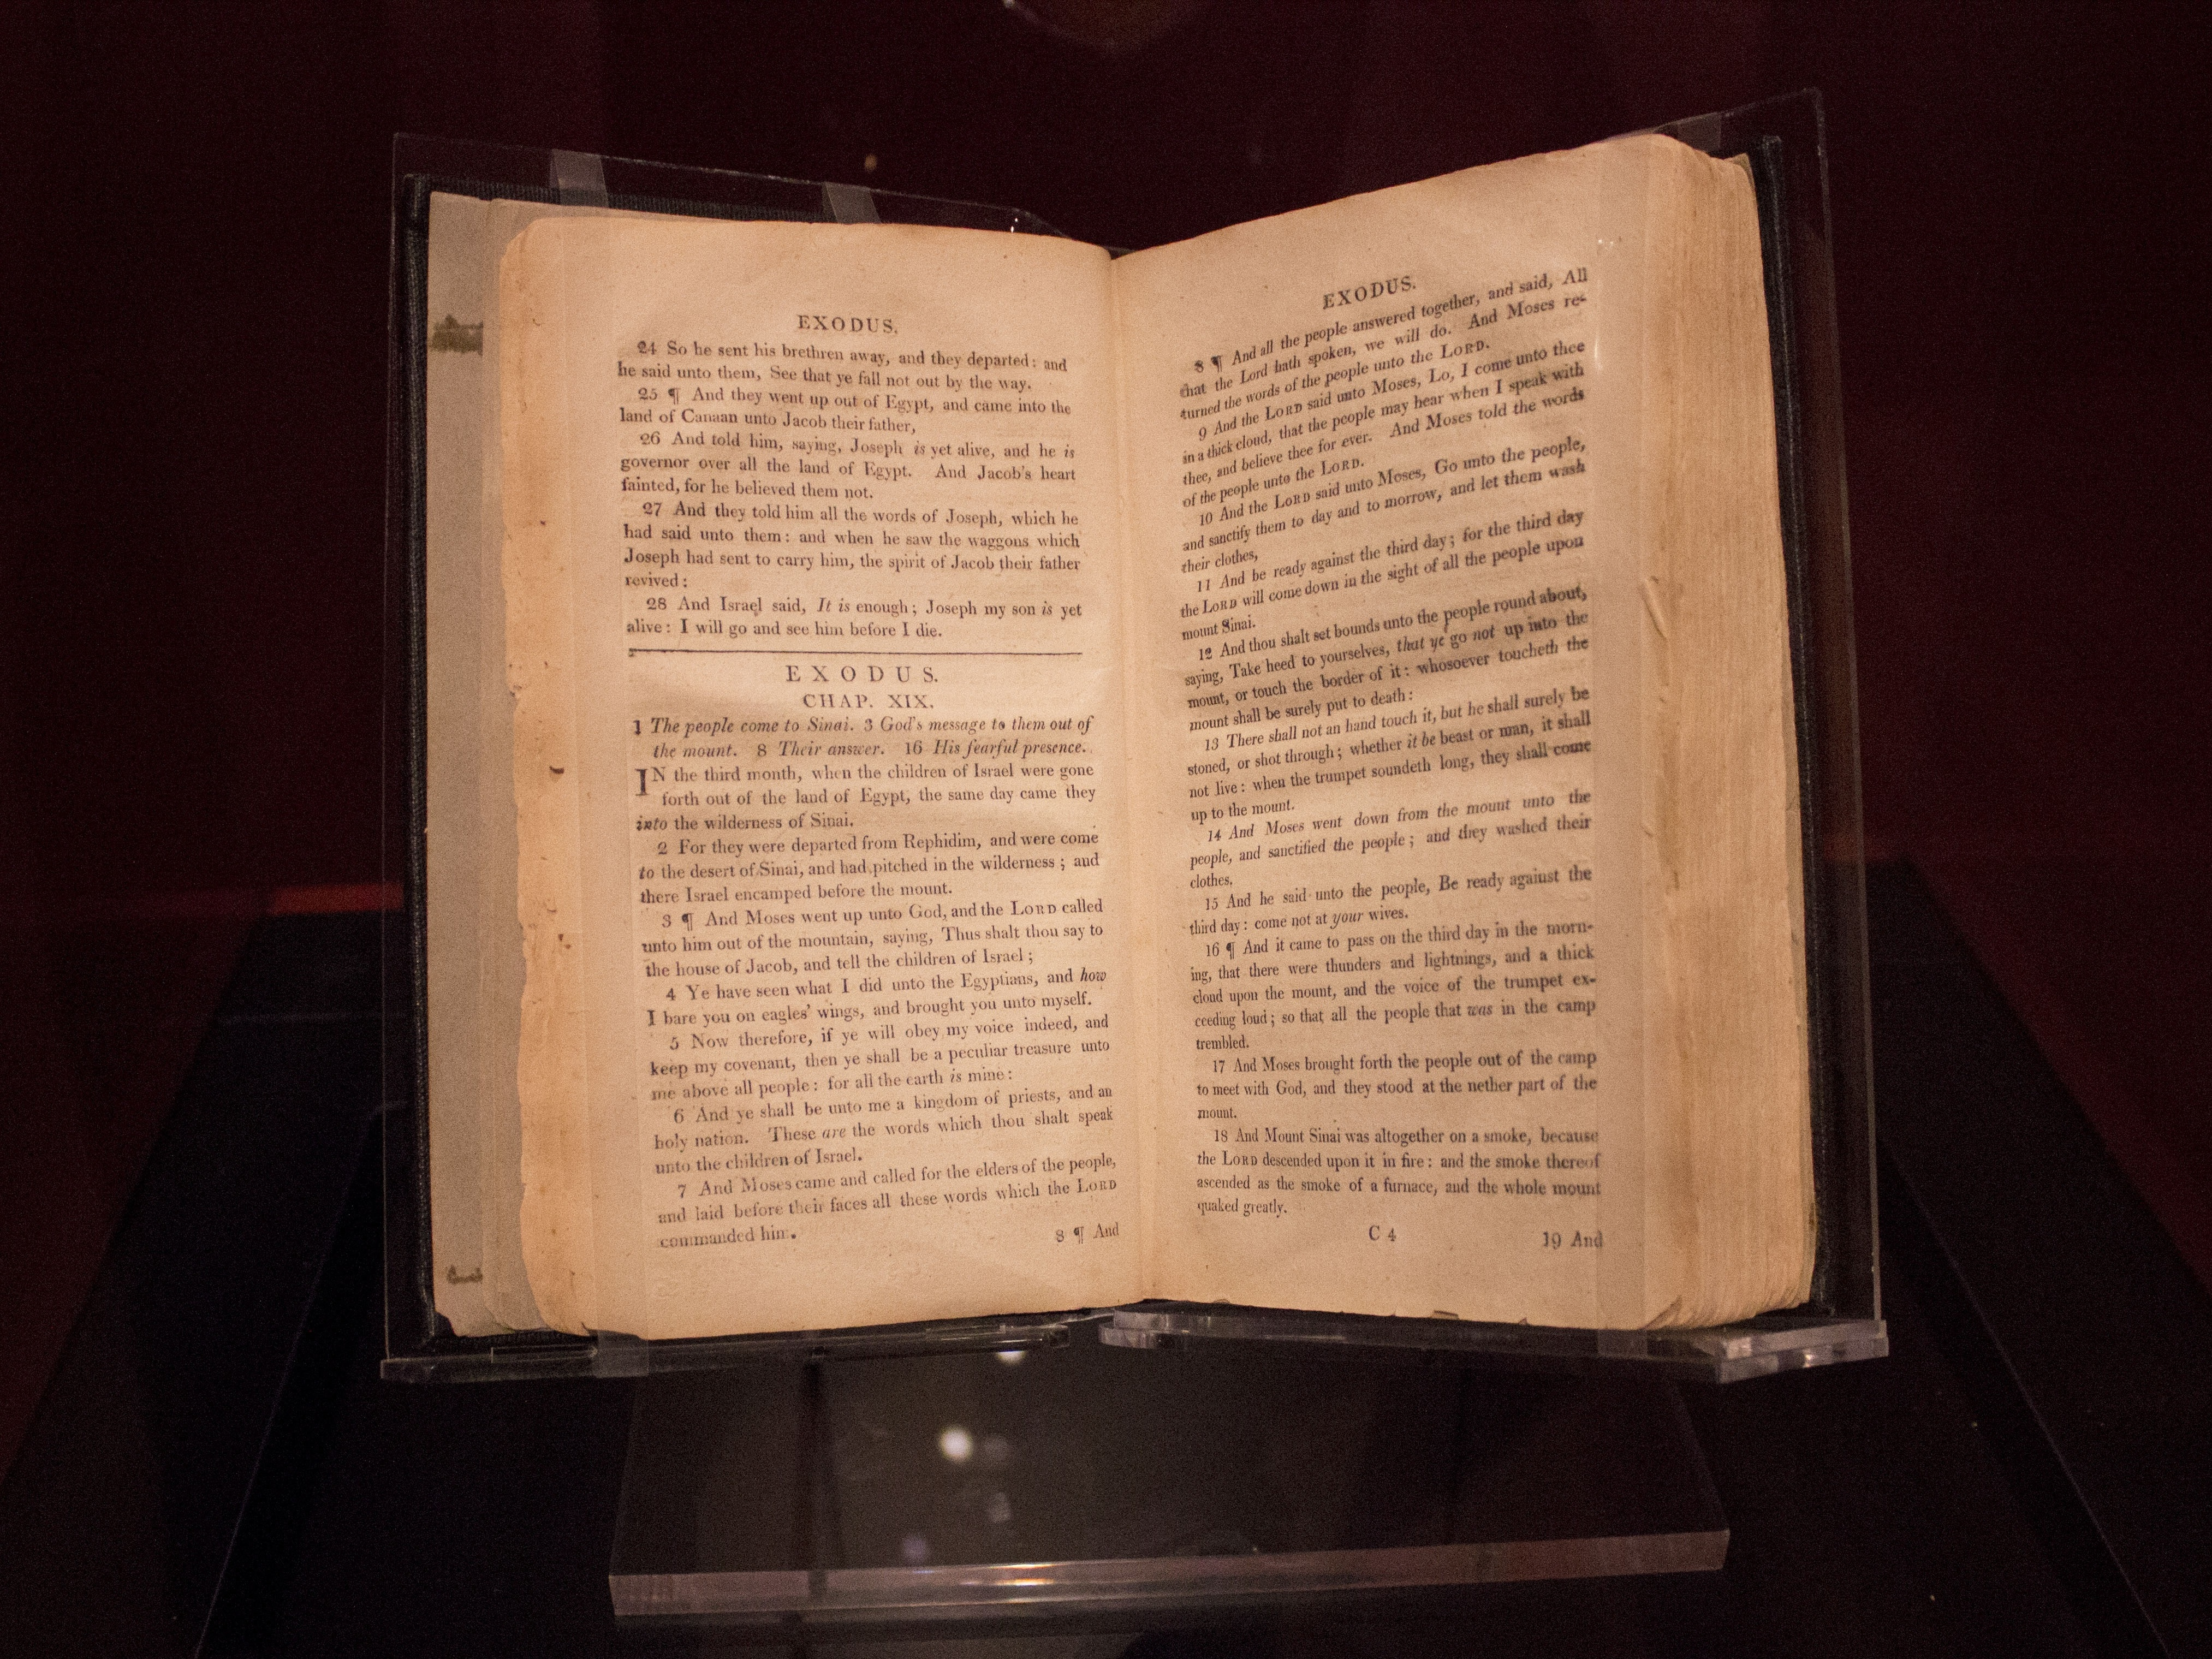 Slave Bible From The 1800s Omitted Key Passages That Could Incite Rebellion